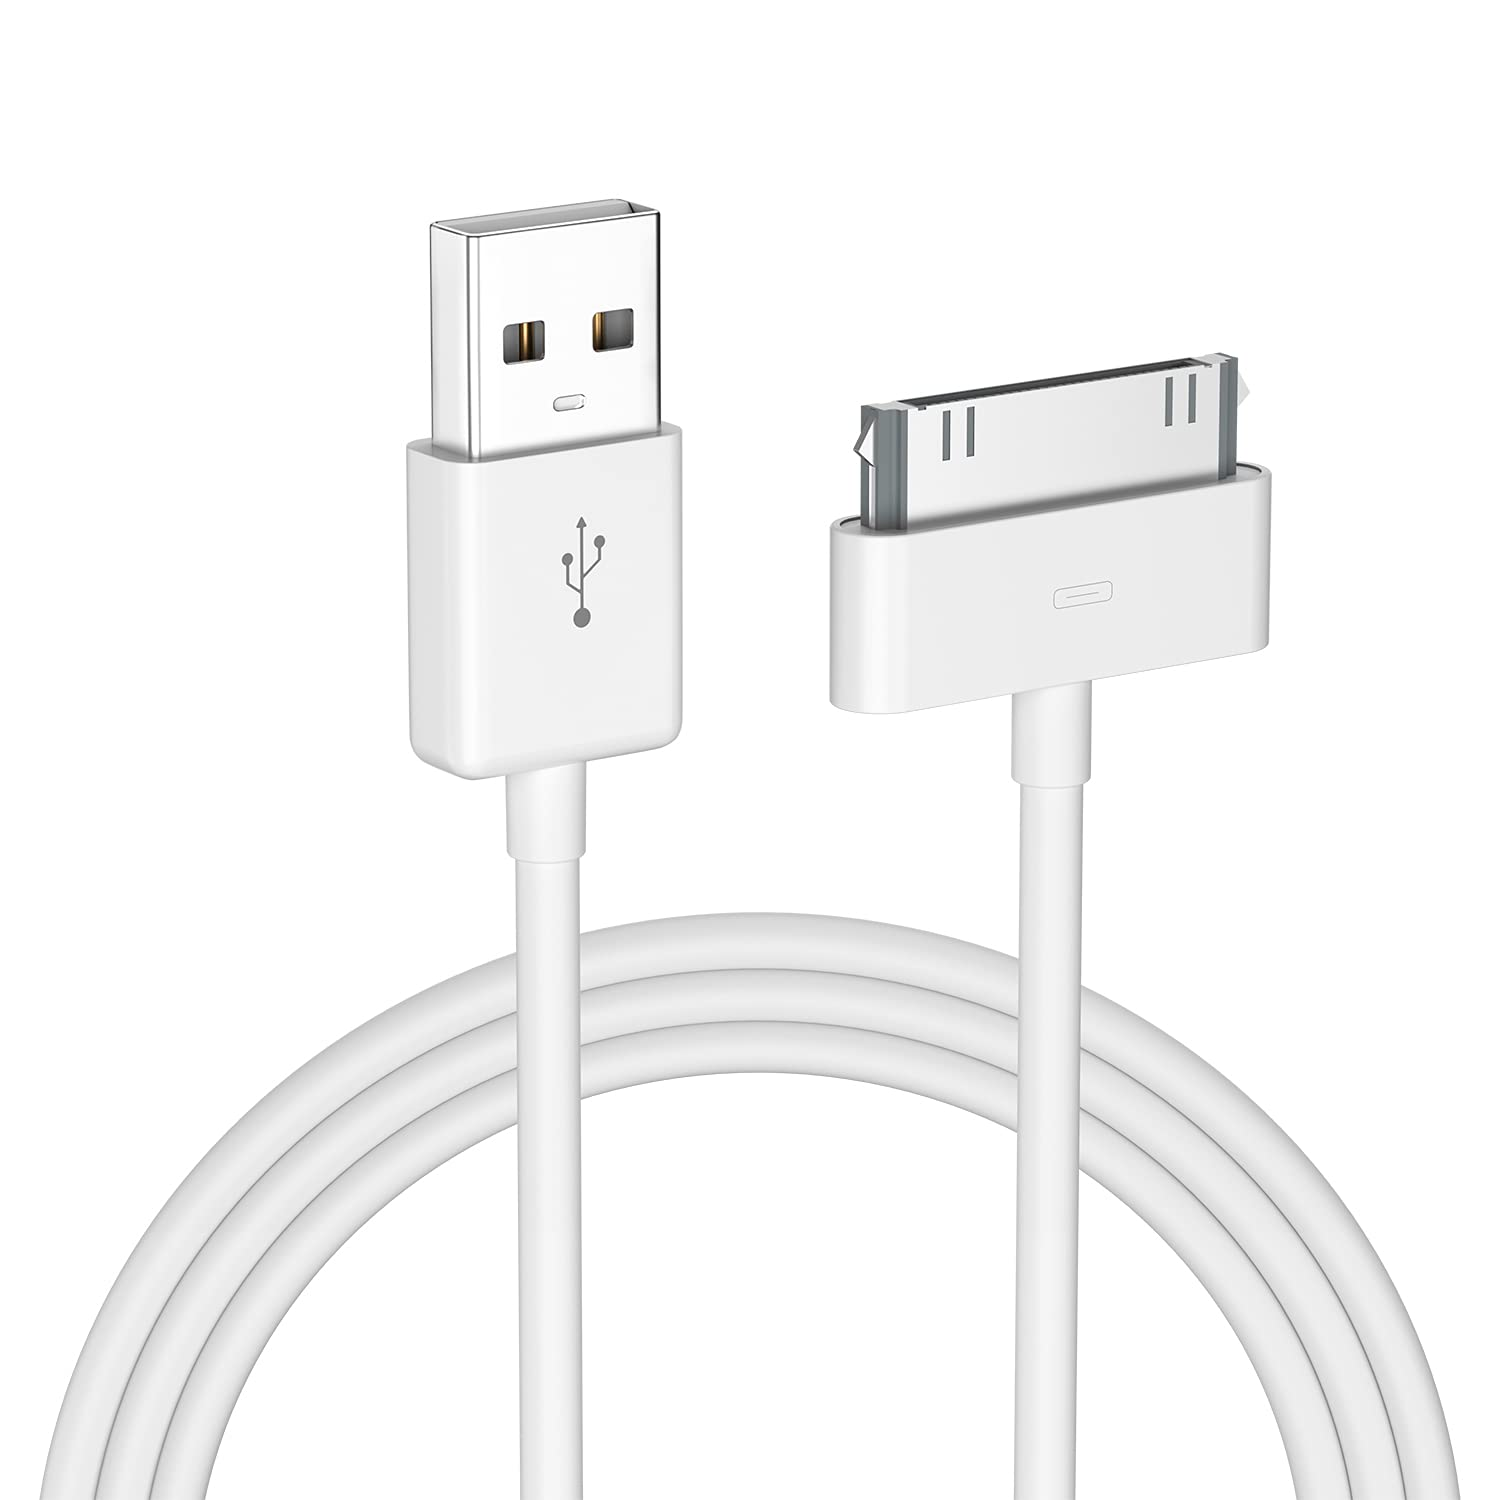 Apple Certified 30 Pin USB Charging Cable, UPoweradd 4.0ft USB Sync Charging Cord iPhone Compatible for 4 4s 3G 3GS iPad 1 2 3 iPod Touch Nano White (1pcs)